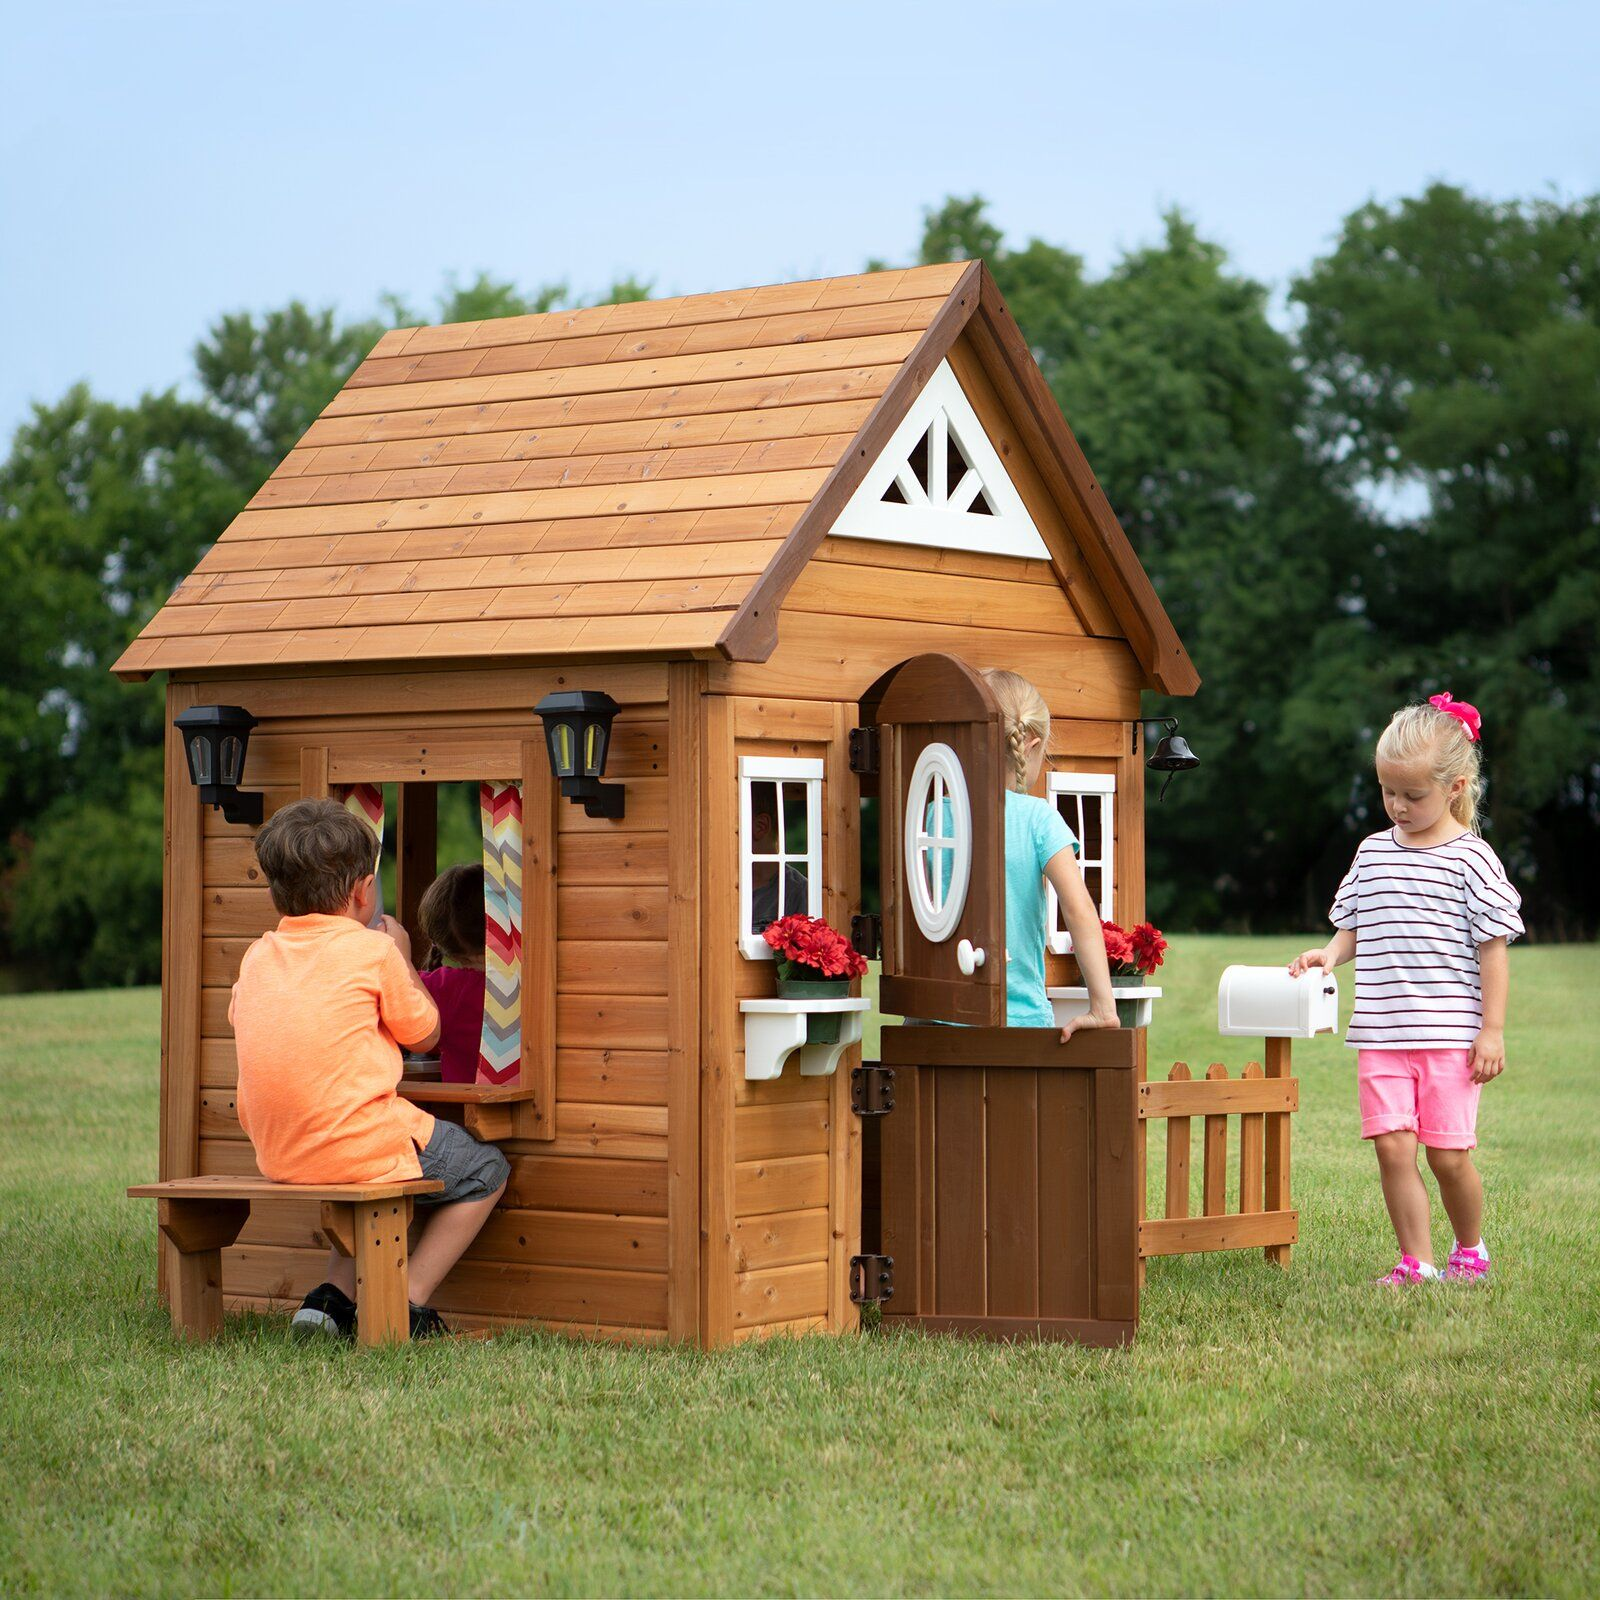 Aspen 7 X 4 Playhouse Play Houses Build A Playhouse Kids Playhouse